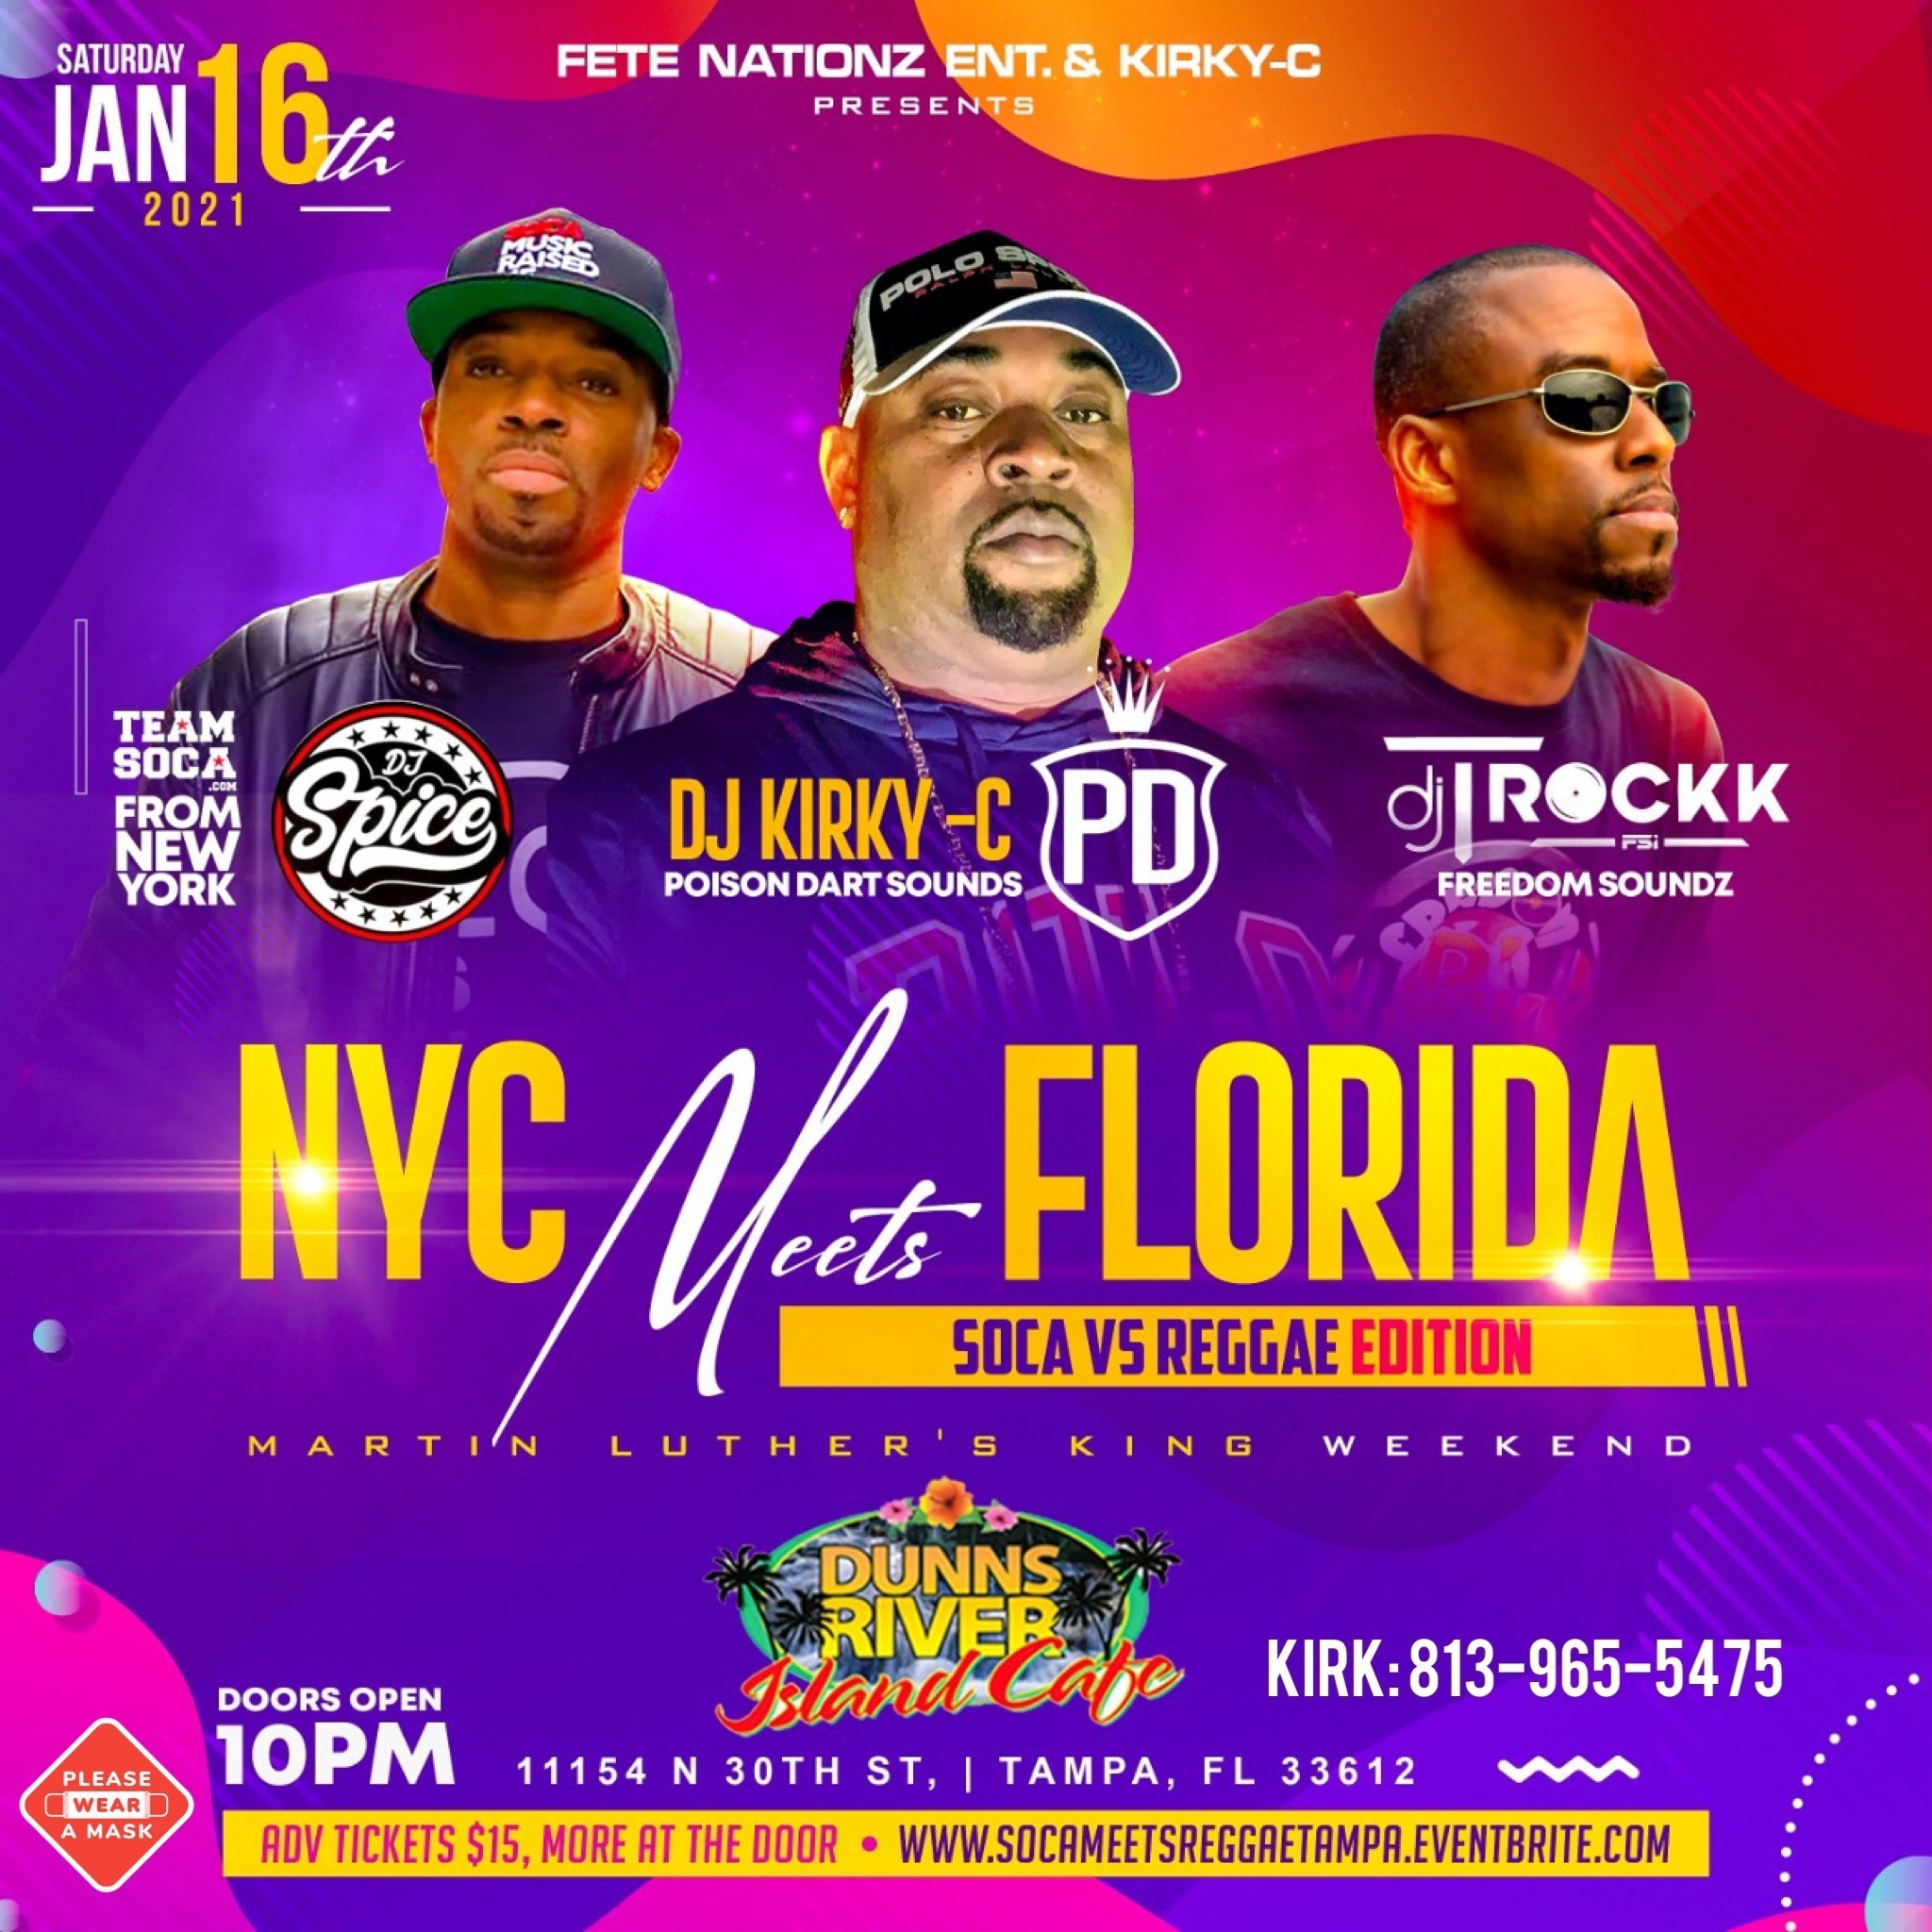 NYC Meets Florida - Martin Luther King Weekend